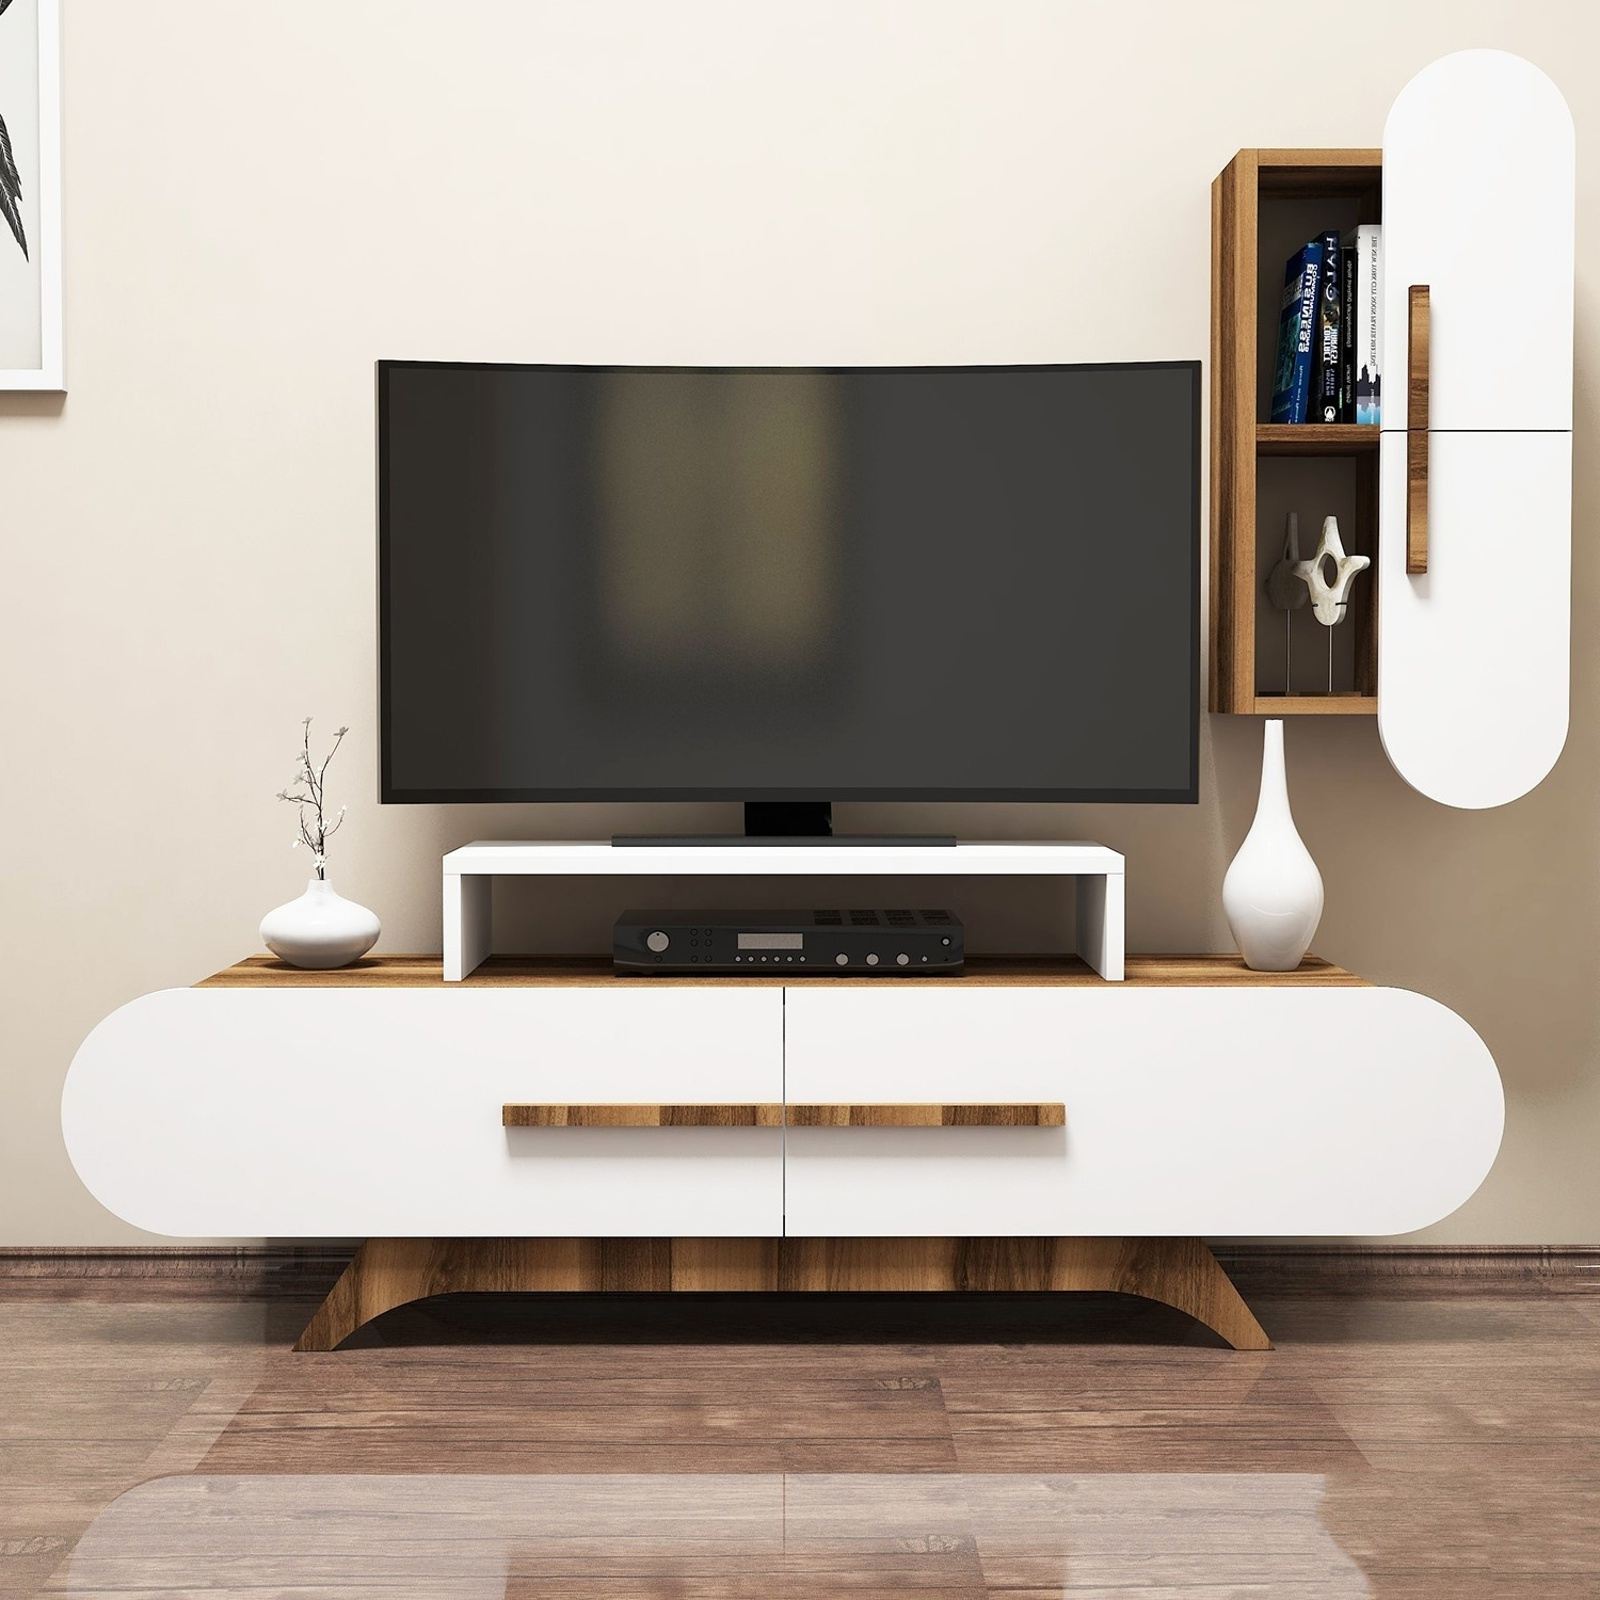 Variant Rose Duvar Raflı Tv Sehpası Ceviz Beyaz | Yukko Intended For Ducar 84 Inch Tv Stands (View 20 of 20)